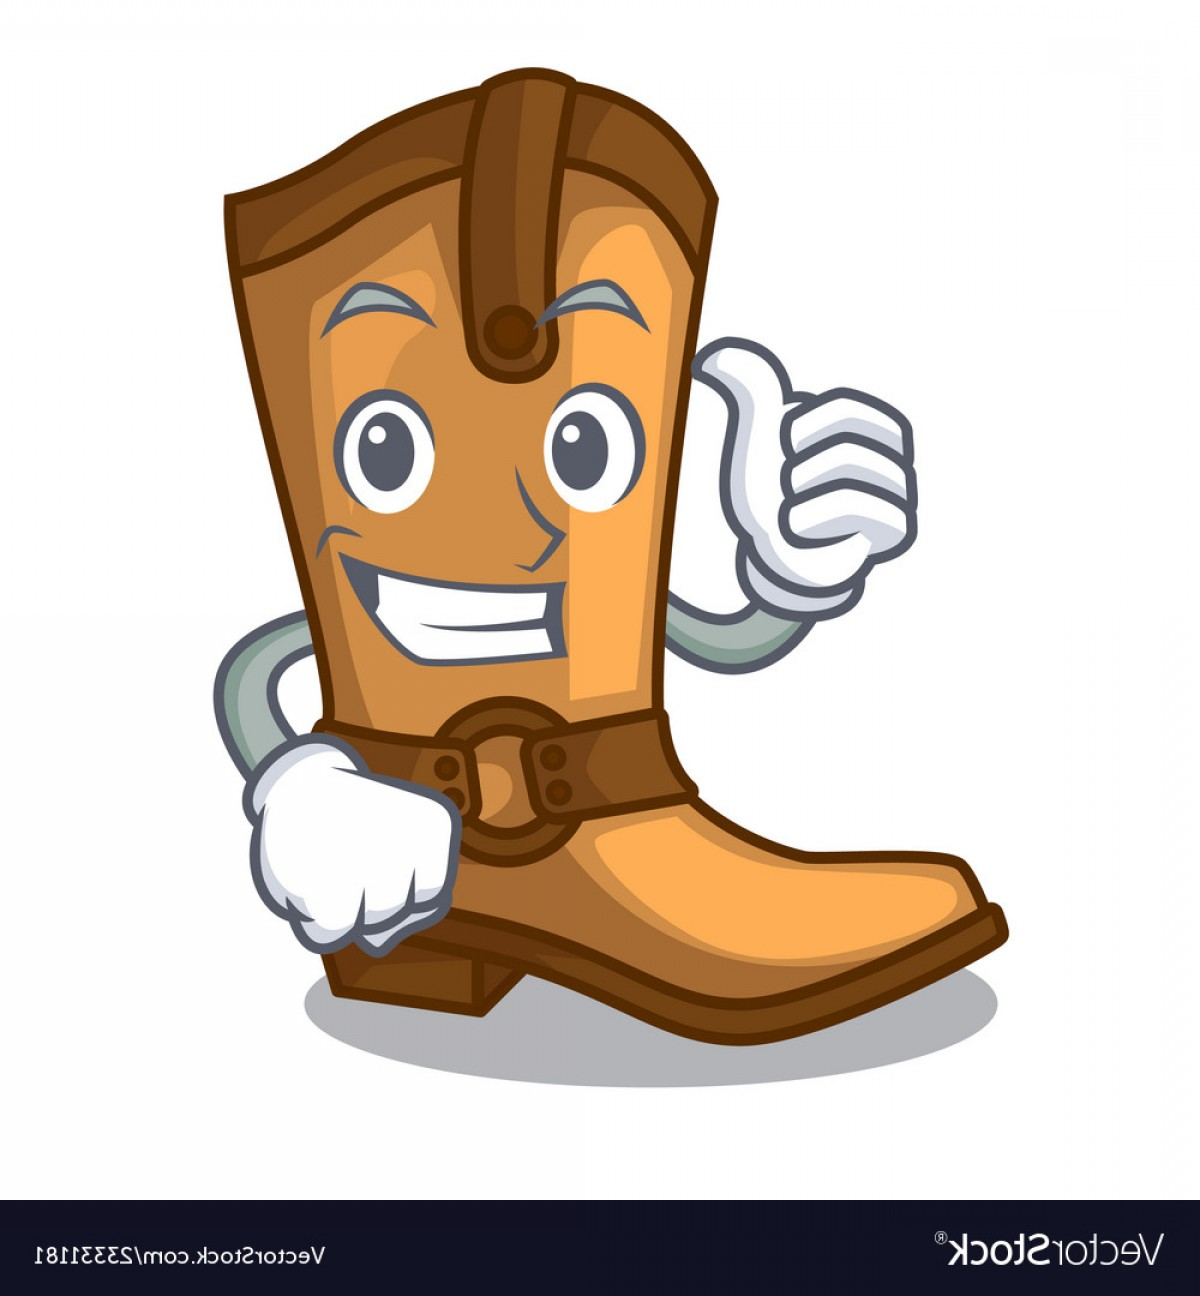 Two Cowgirl Boots Vector: Thumbs Up Cowboy Boots Isolated In The Mascot Vector